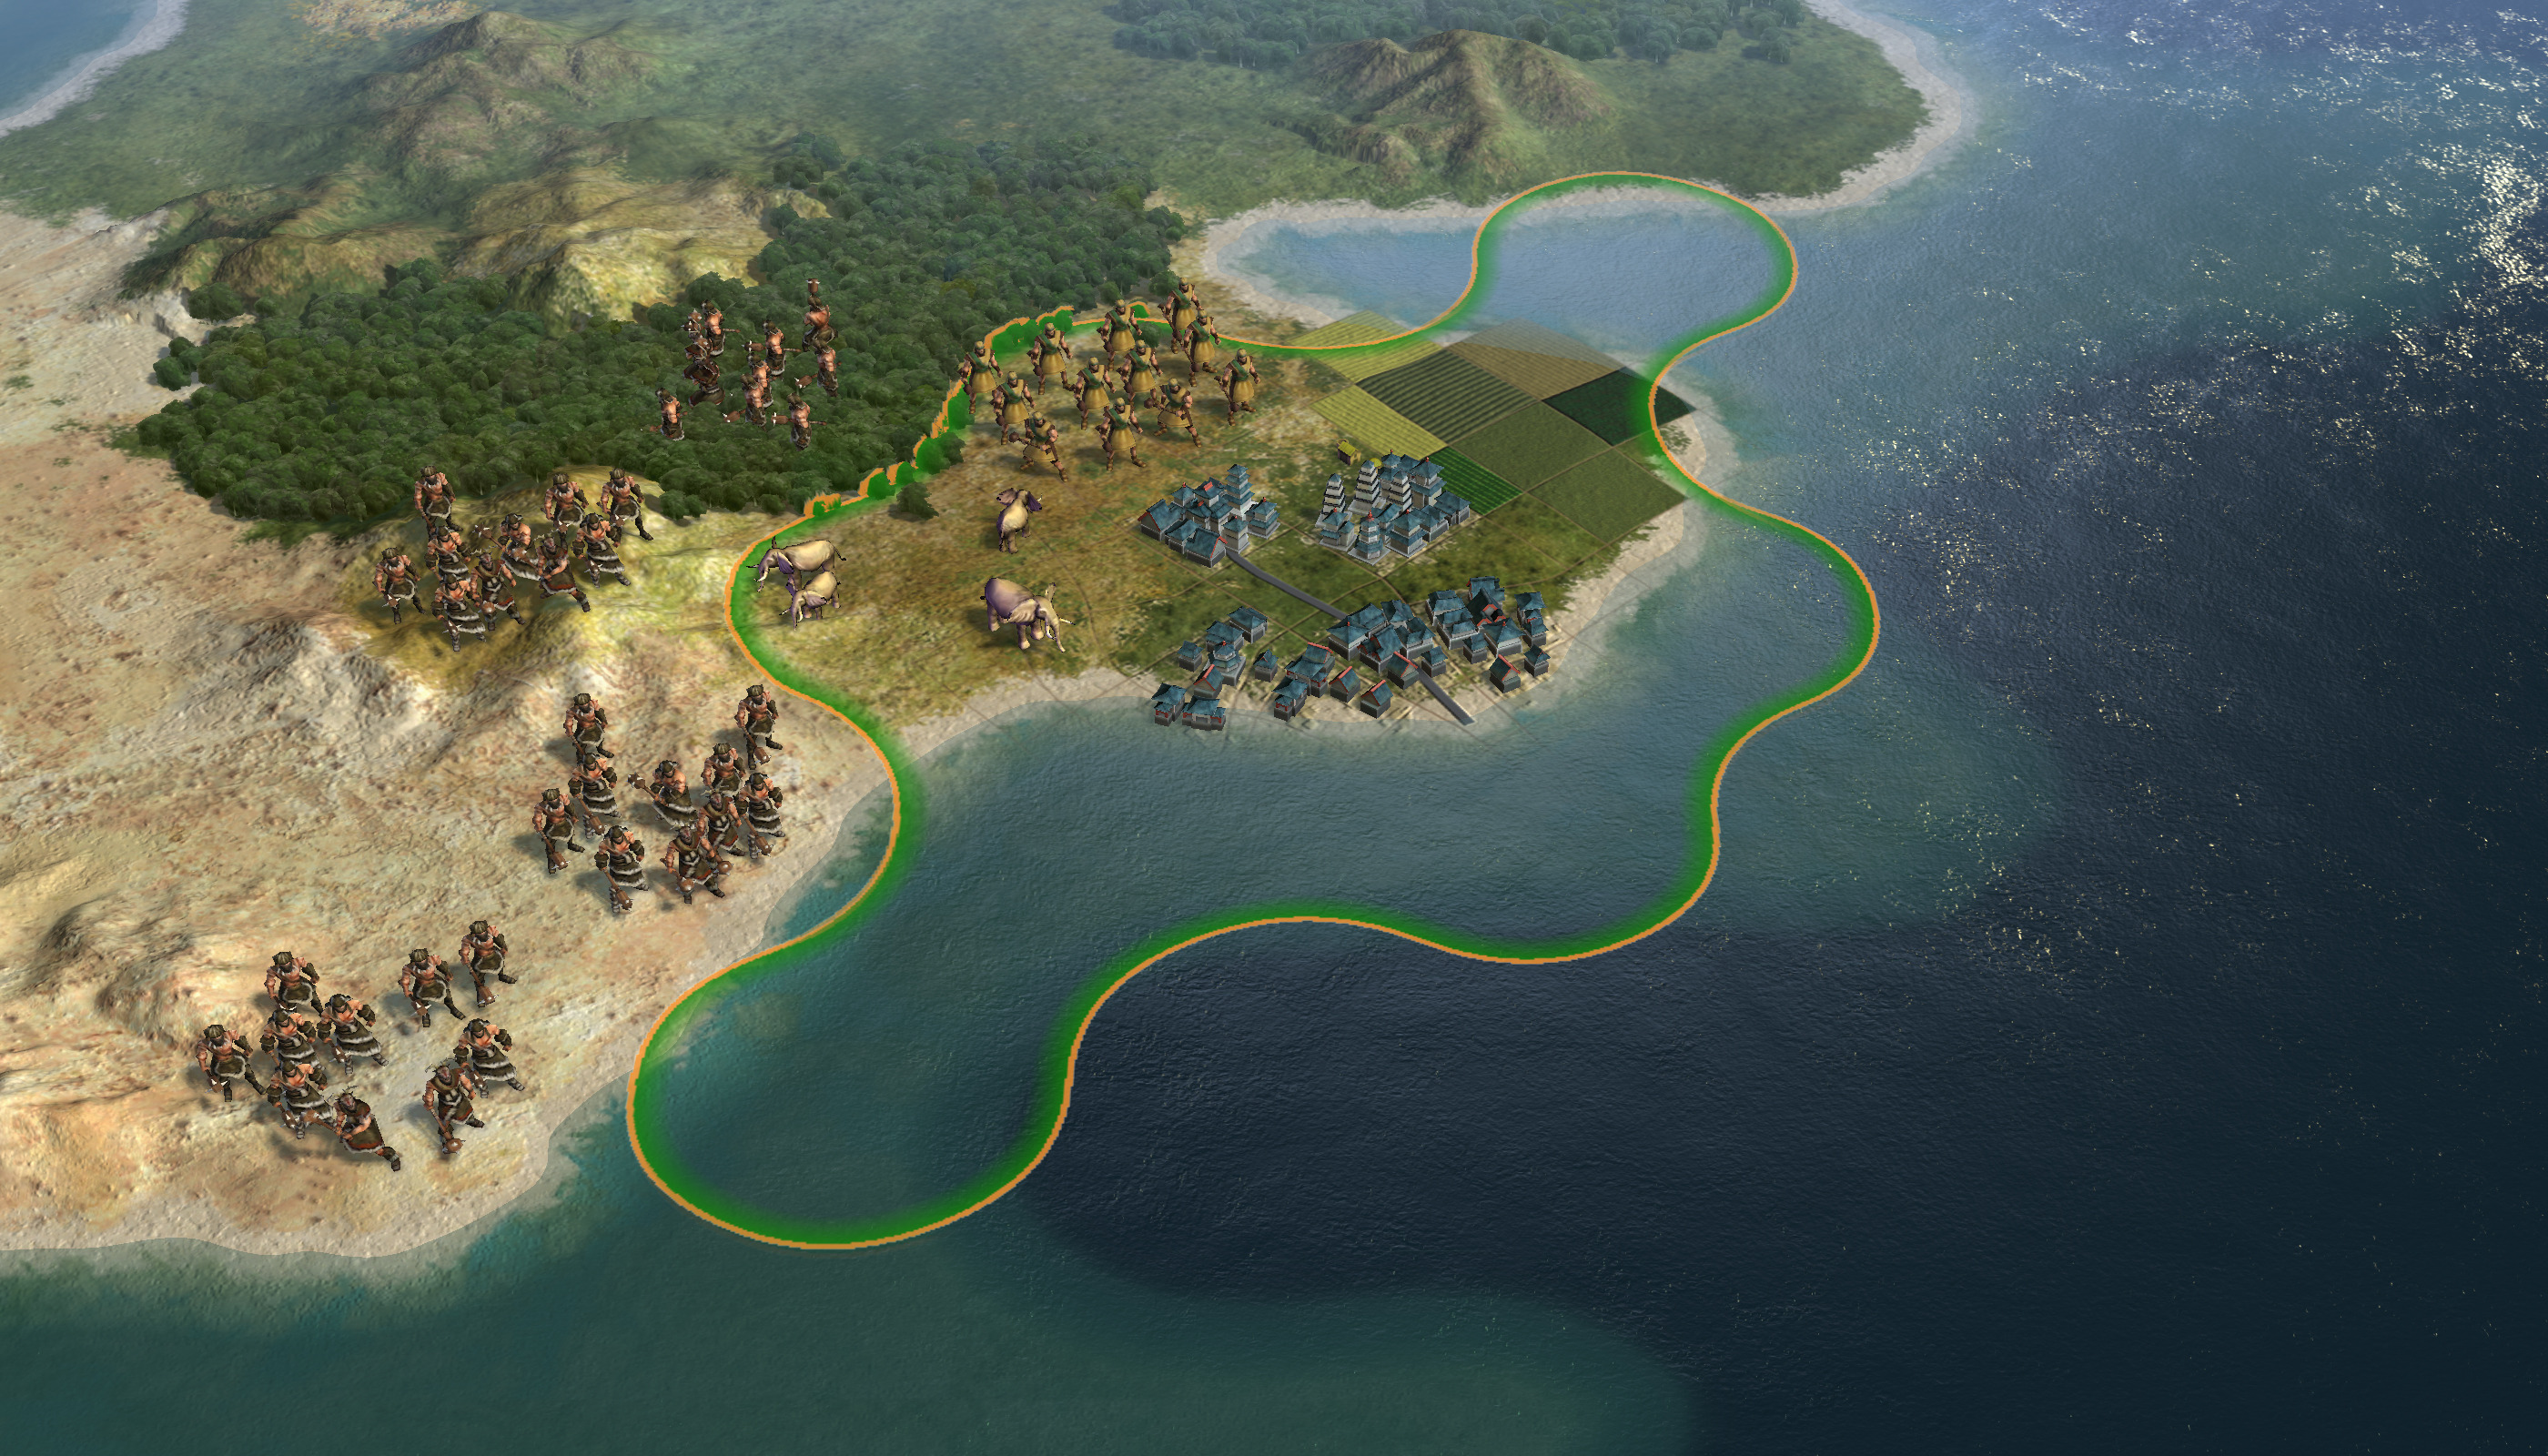 CIV_V_GDC_SCREEN_2.jpg